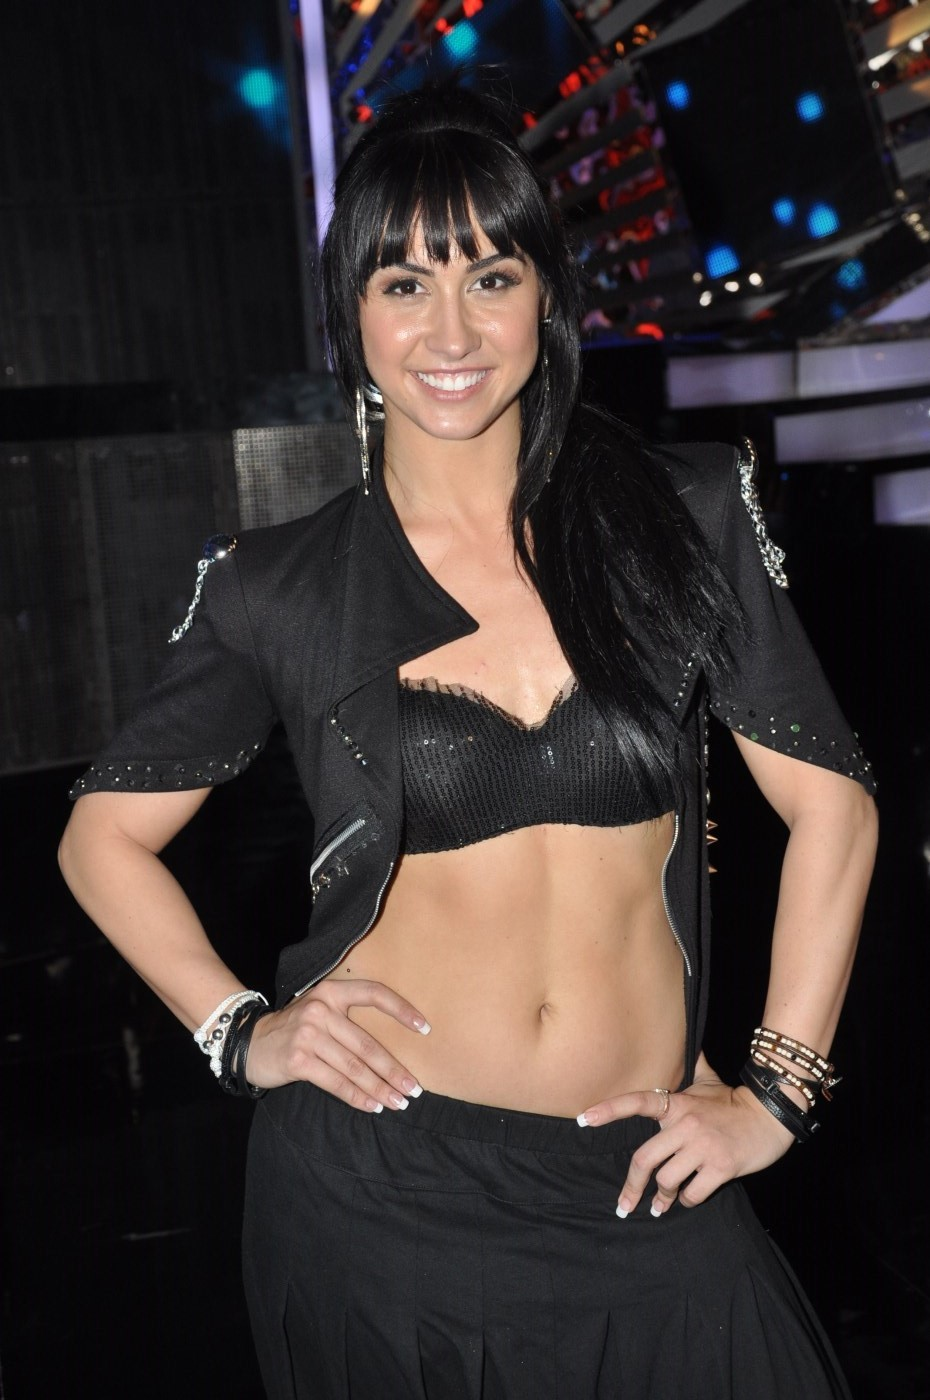 Nude hd photos of lauren gottlieb, naked female bodybuilder porn